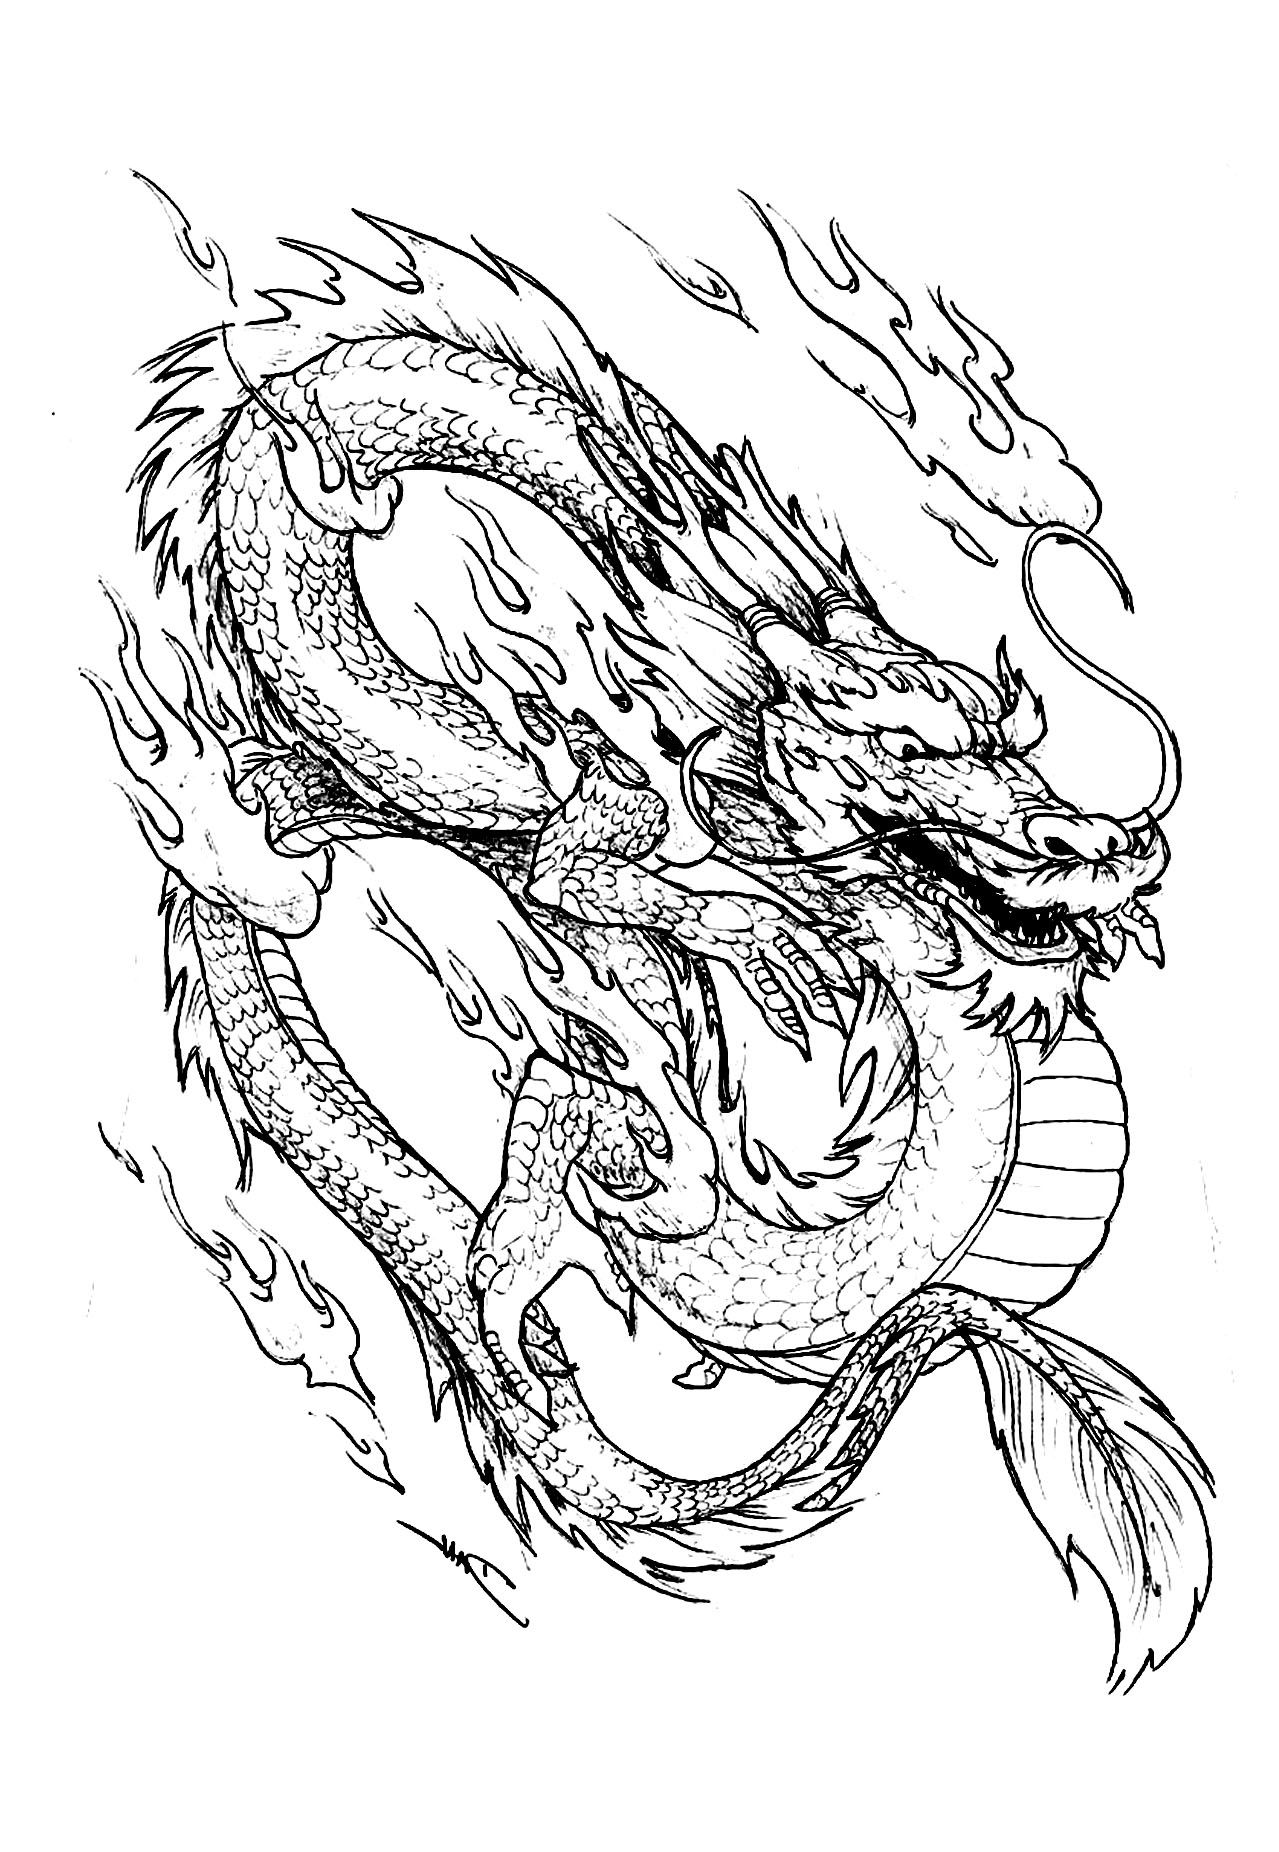 Galerie de coloriages gratuits coloriage dragon chinois - Modele dessin dragon ...